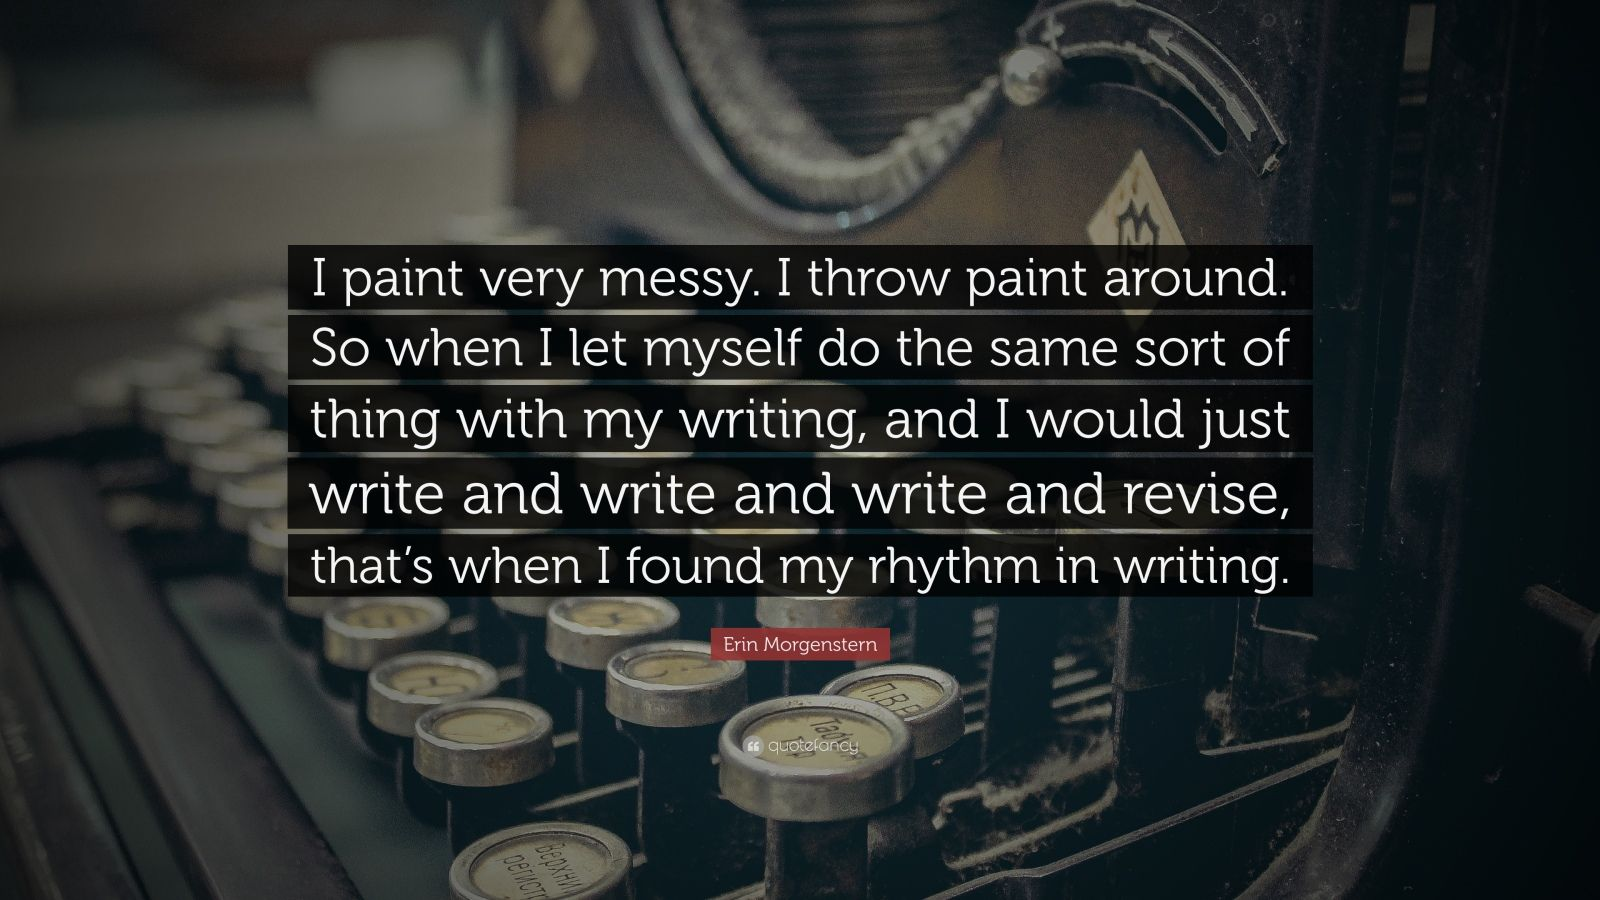 """Erin Morgenstern Quote: """"I paint very messy. I throw paint around. So when I let myself do the same sort of thing with my writing, and I would just write and write and write and revise, that's when I found my rhythm in writing."""""""